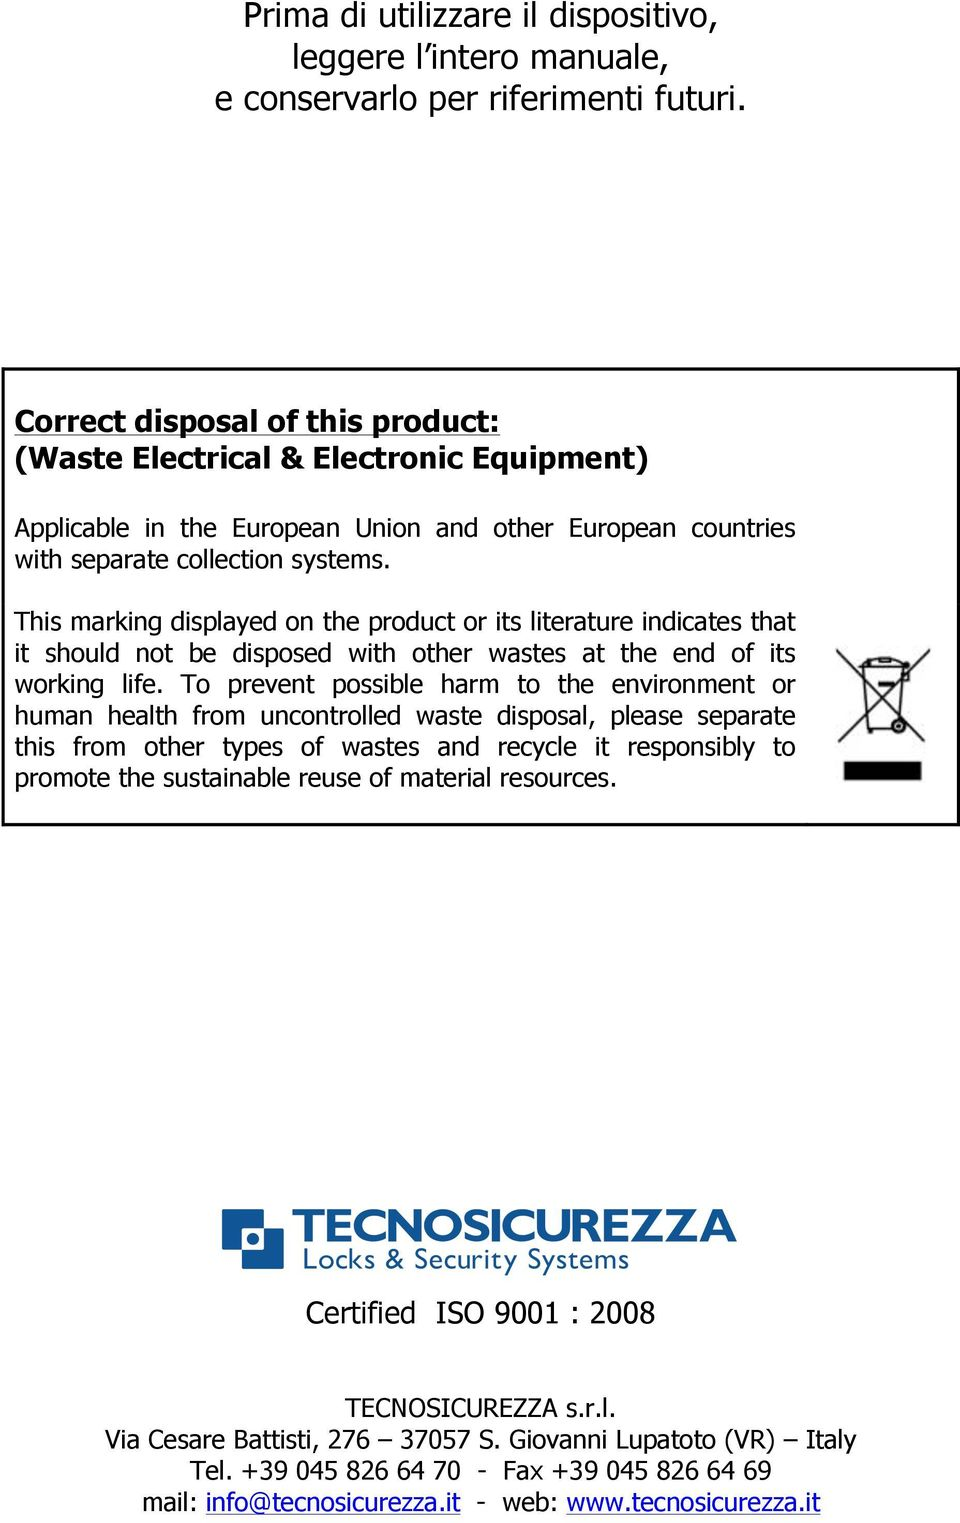 This marking displayed on the product or its literature indicates that it should not be disposed with other wastes at the end of its working life.